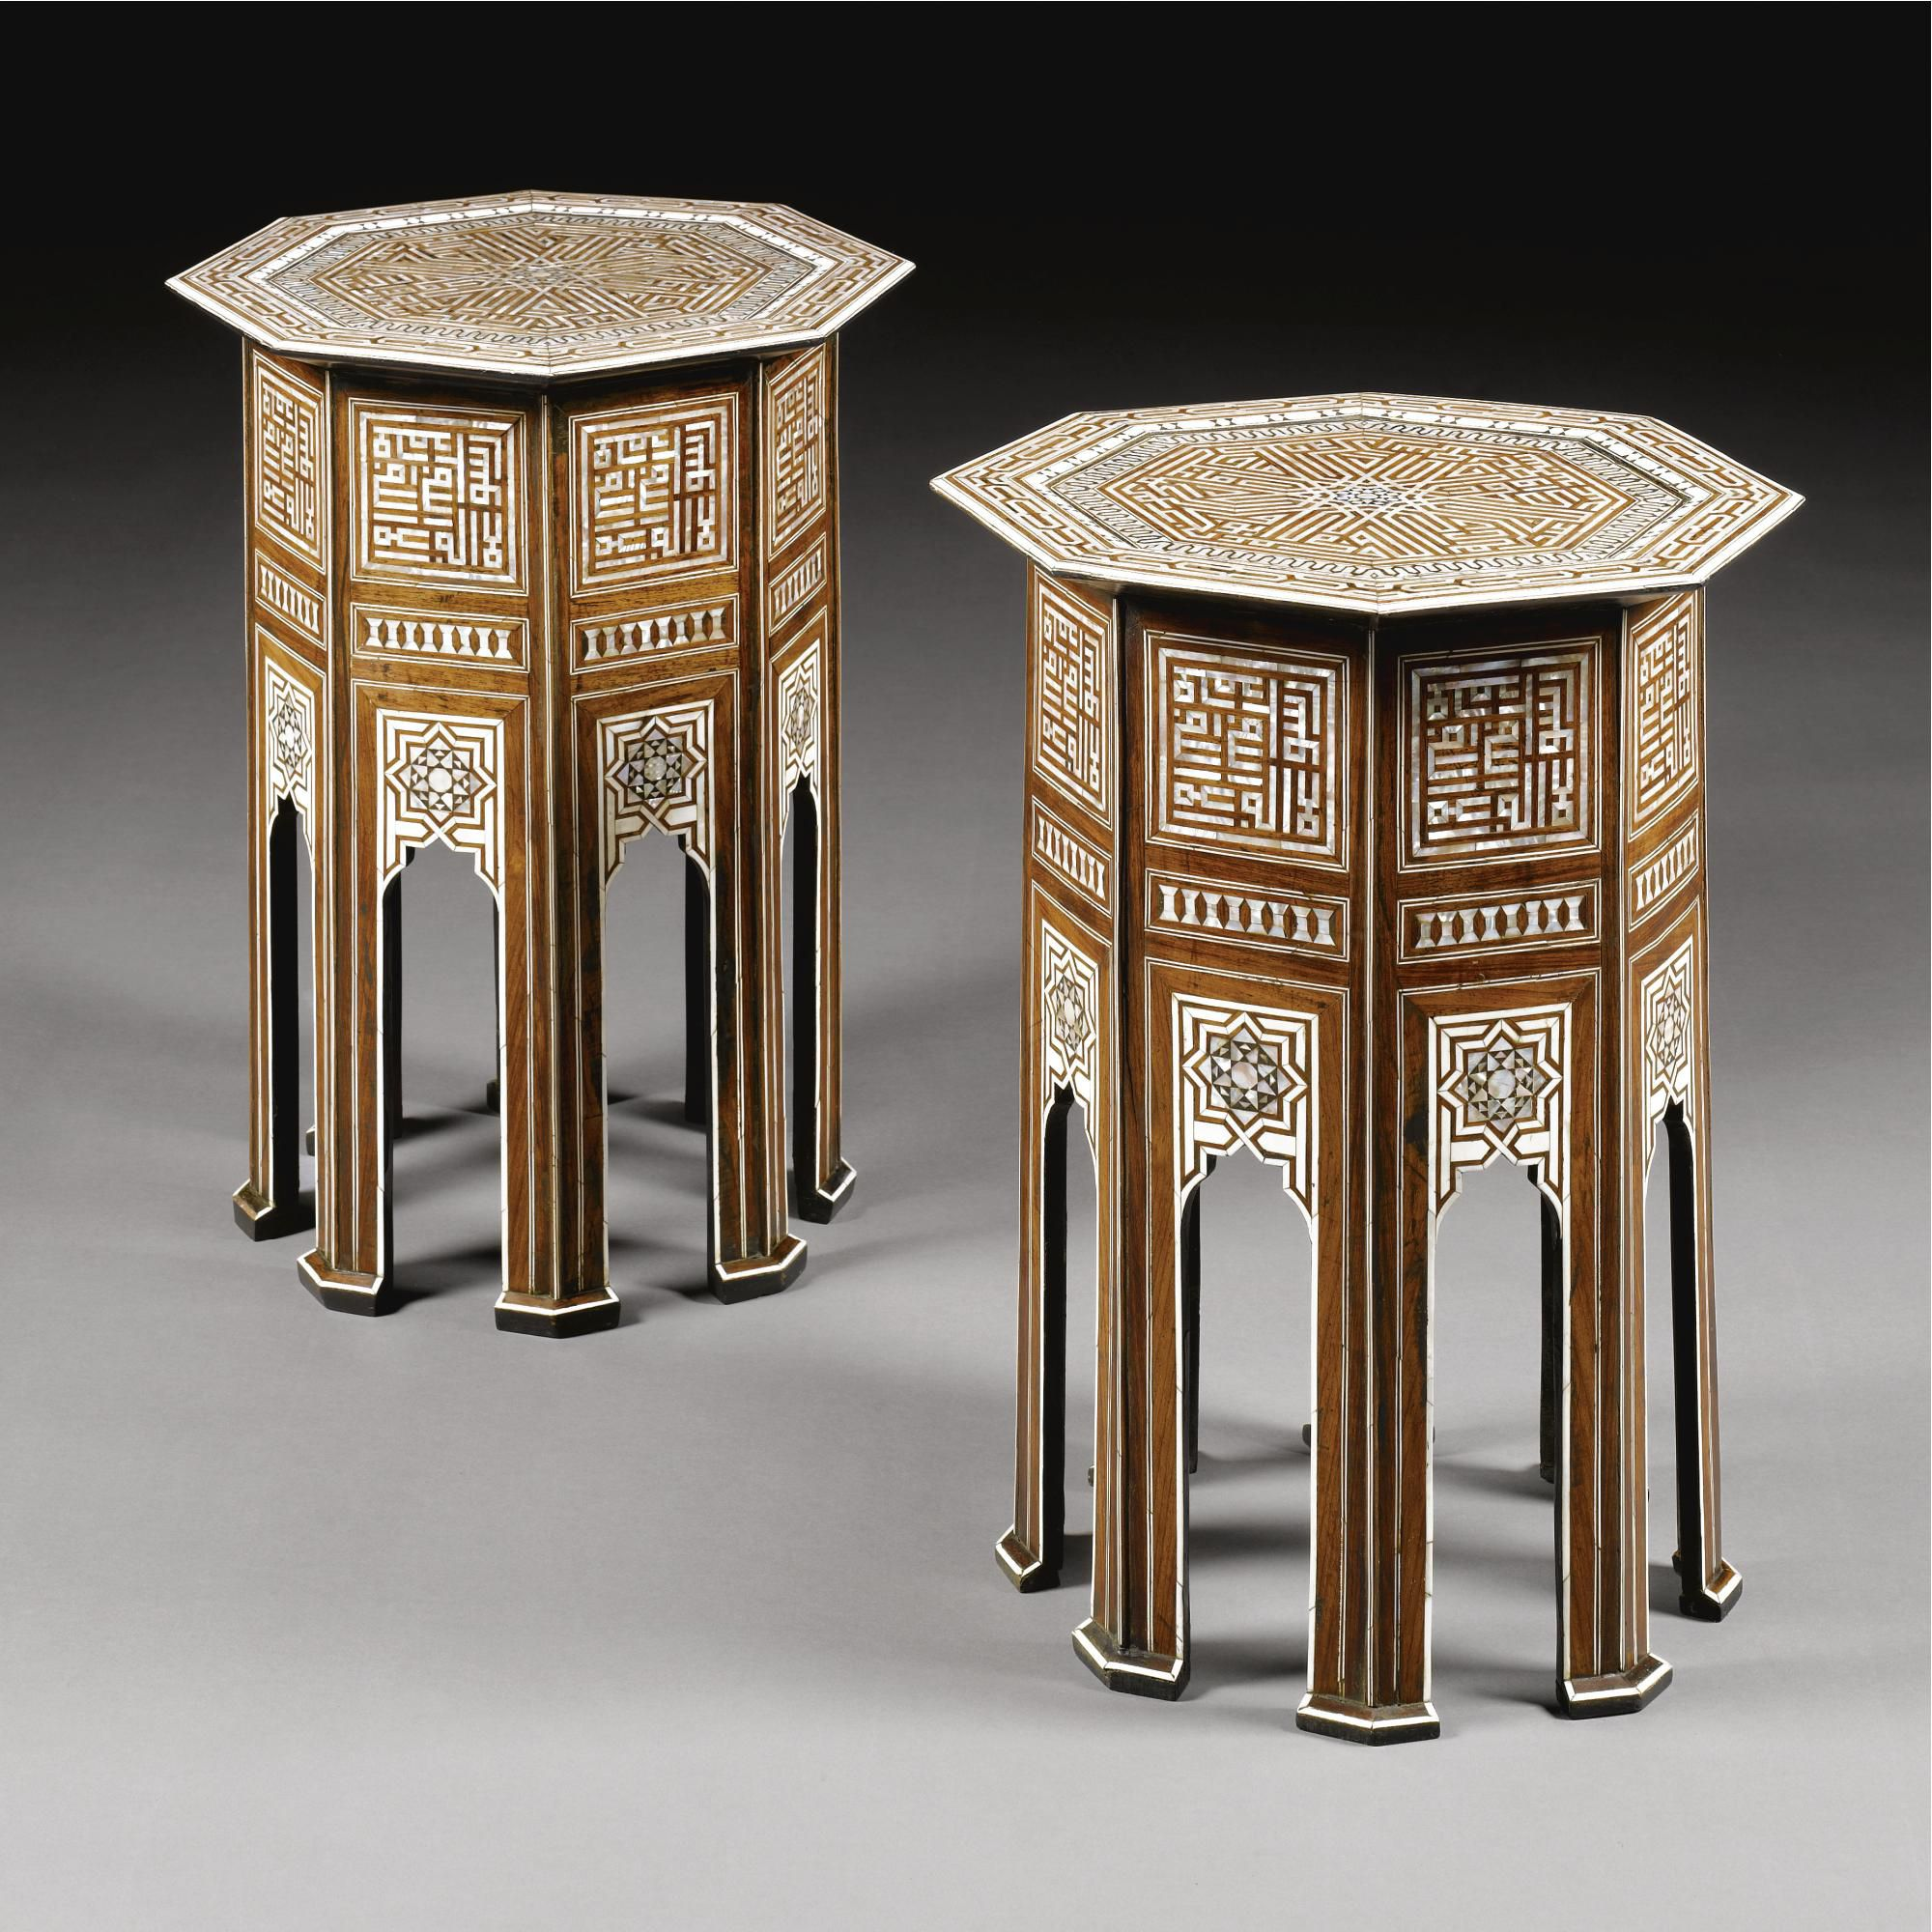 A Pair Of Mother Of Pearl And Ivory Inlaid Octagonal Coffee Tables